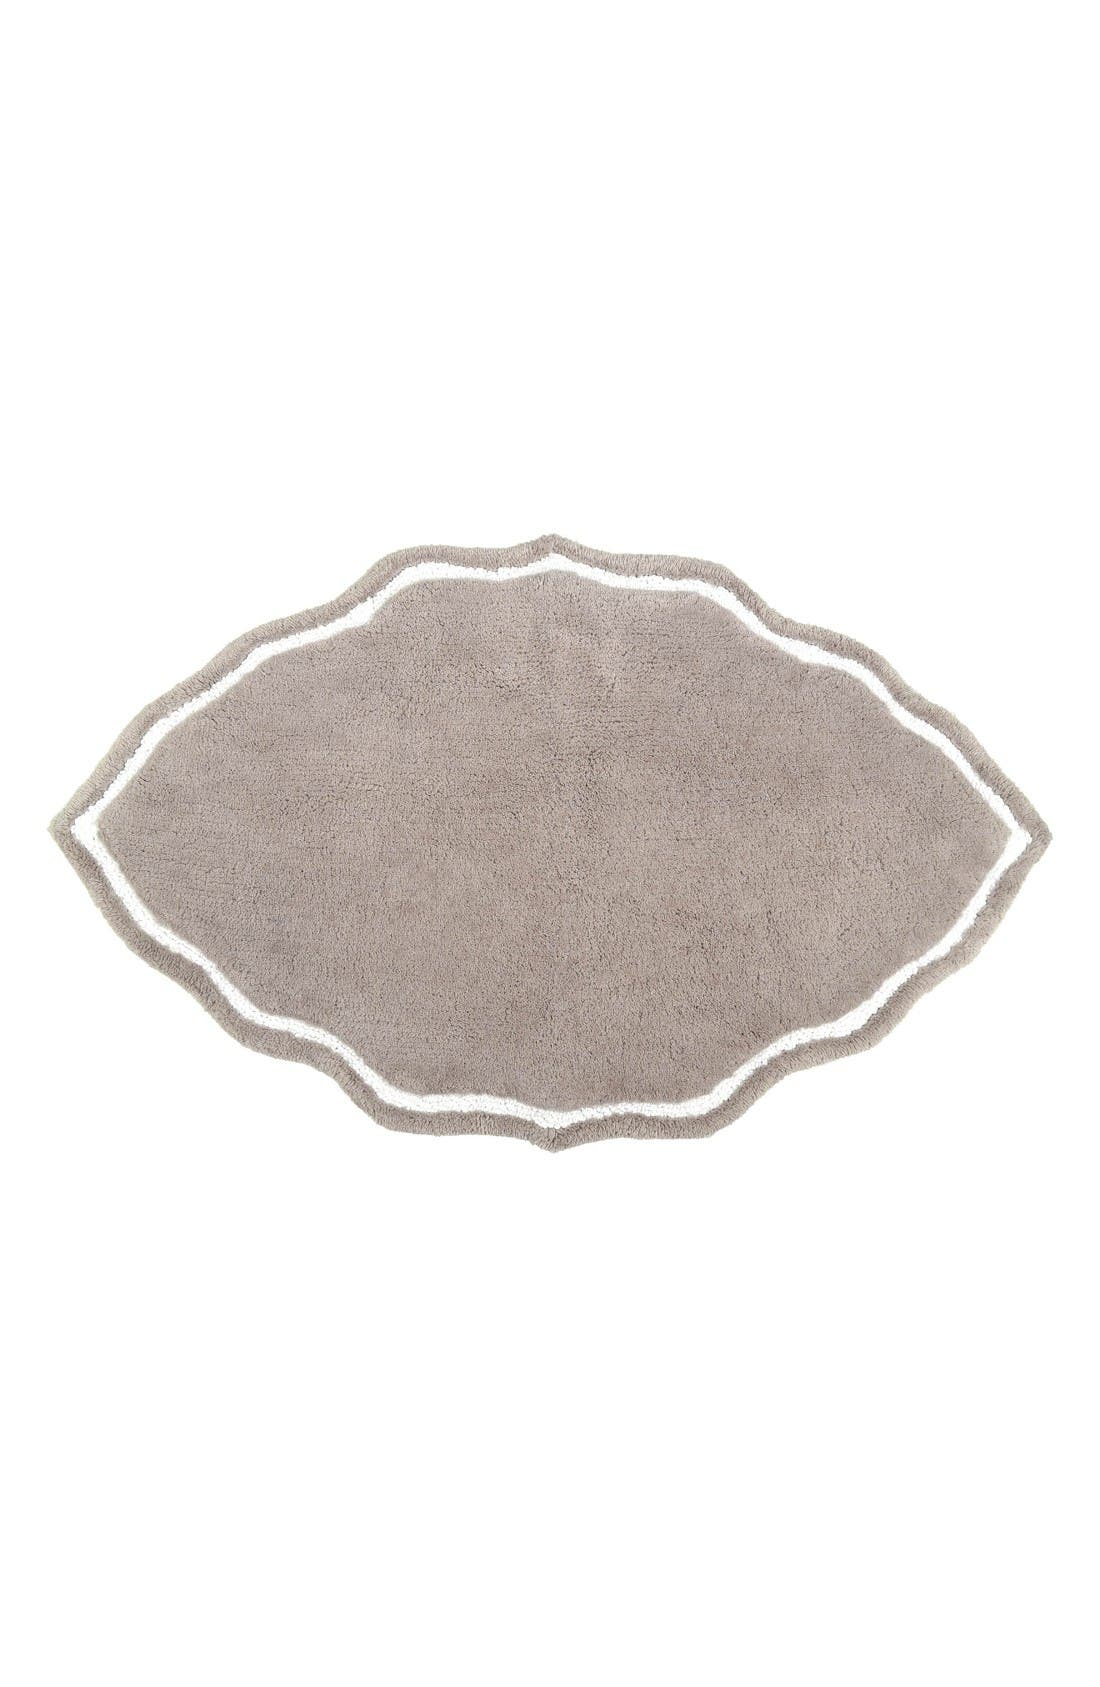 Main Image - John Robshaw Signature Tufted Bath Rug